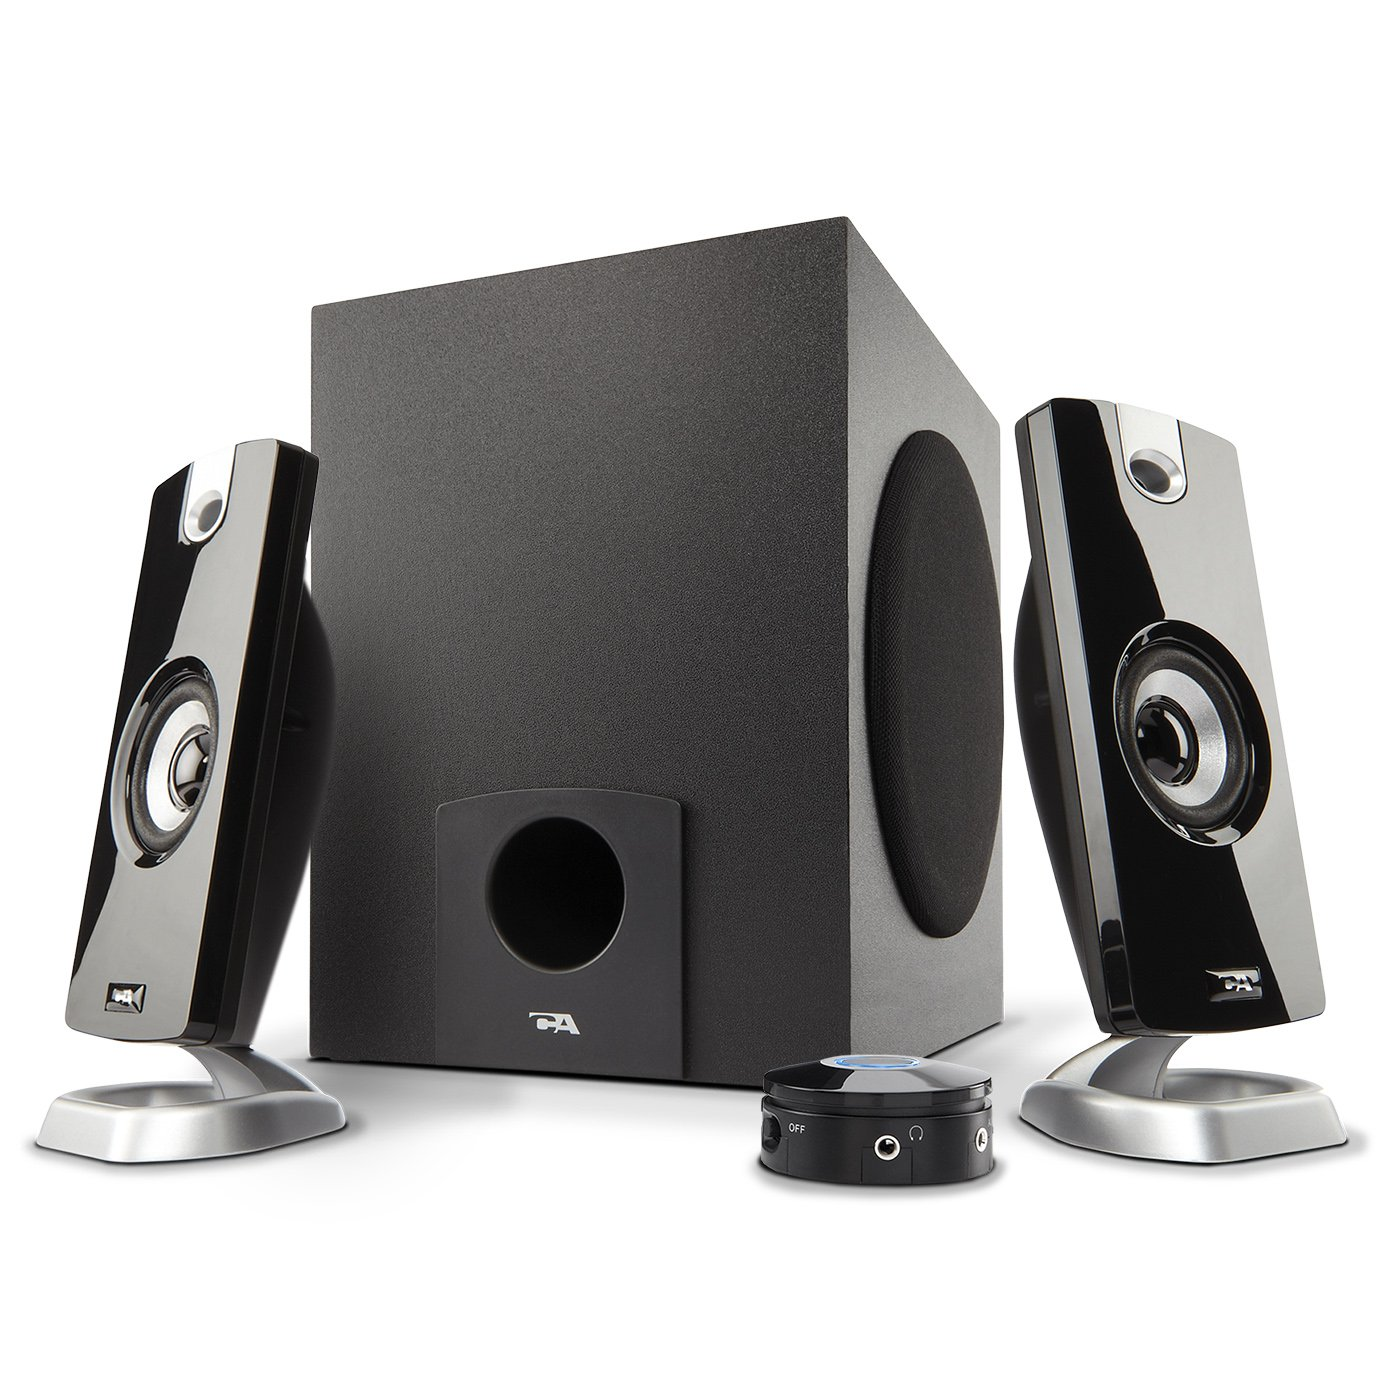 Cyber Acoustics 2.1 Subwoofer Speaker System with 18W of Power – Great for Music, Movies, Gaming, and Multimedia Computer Laptops (CA-3090)